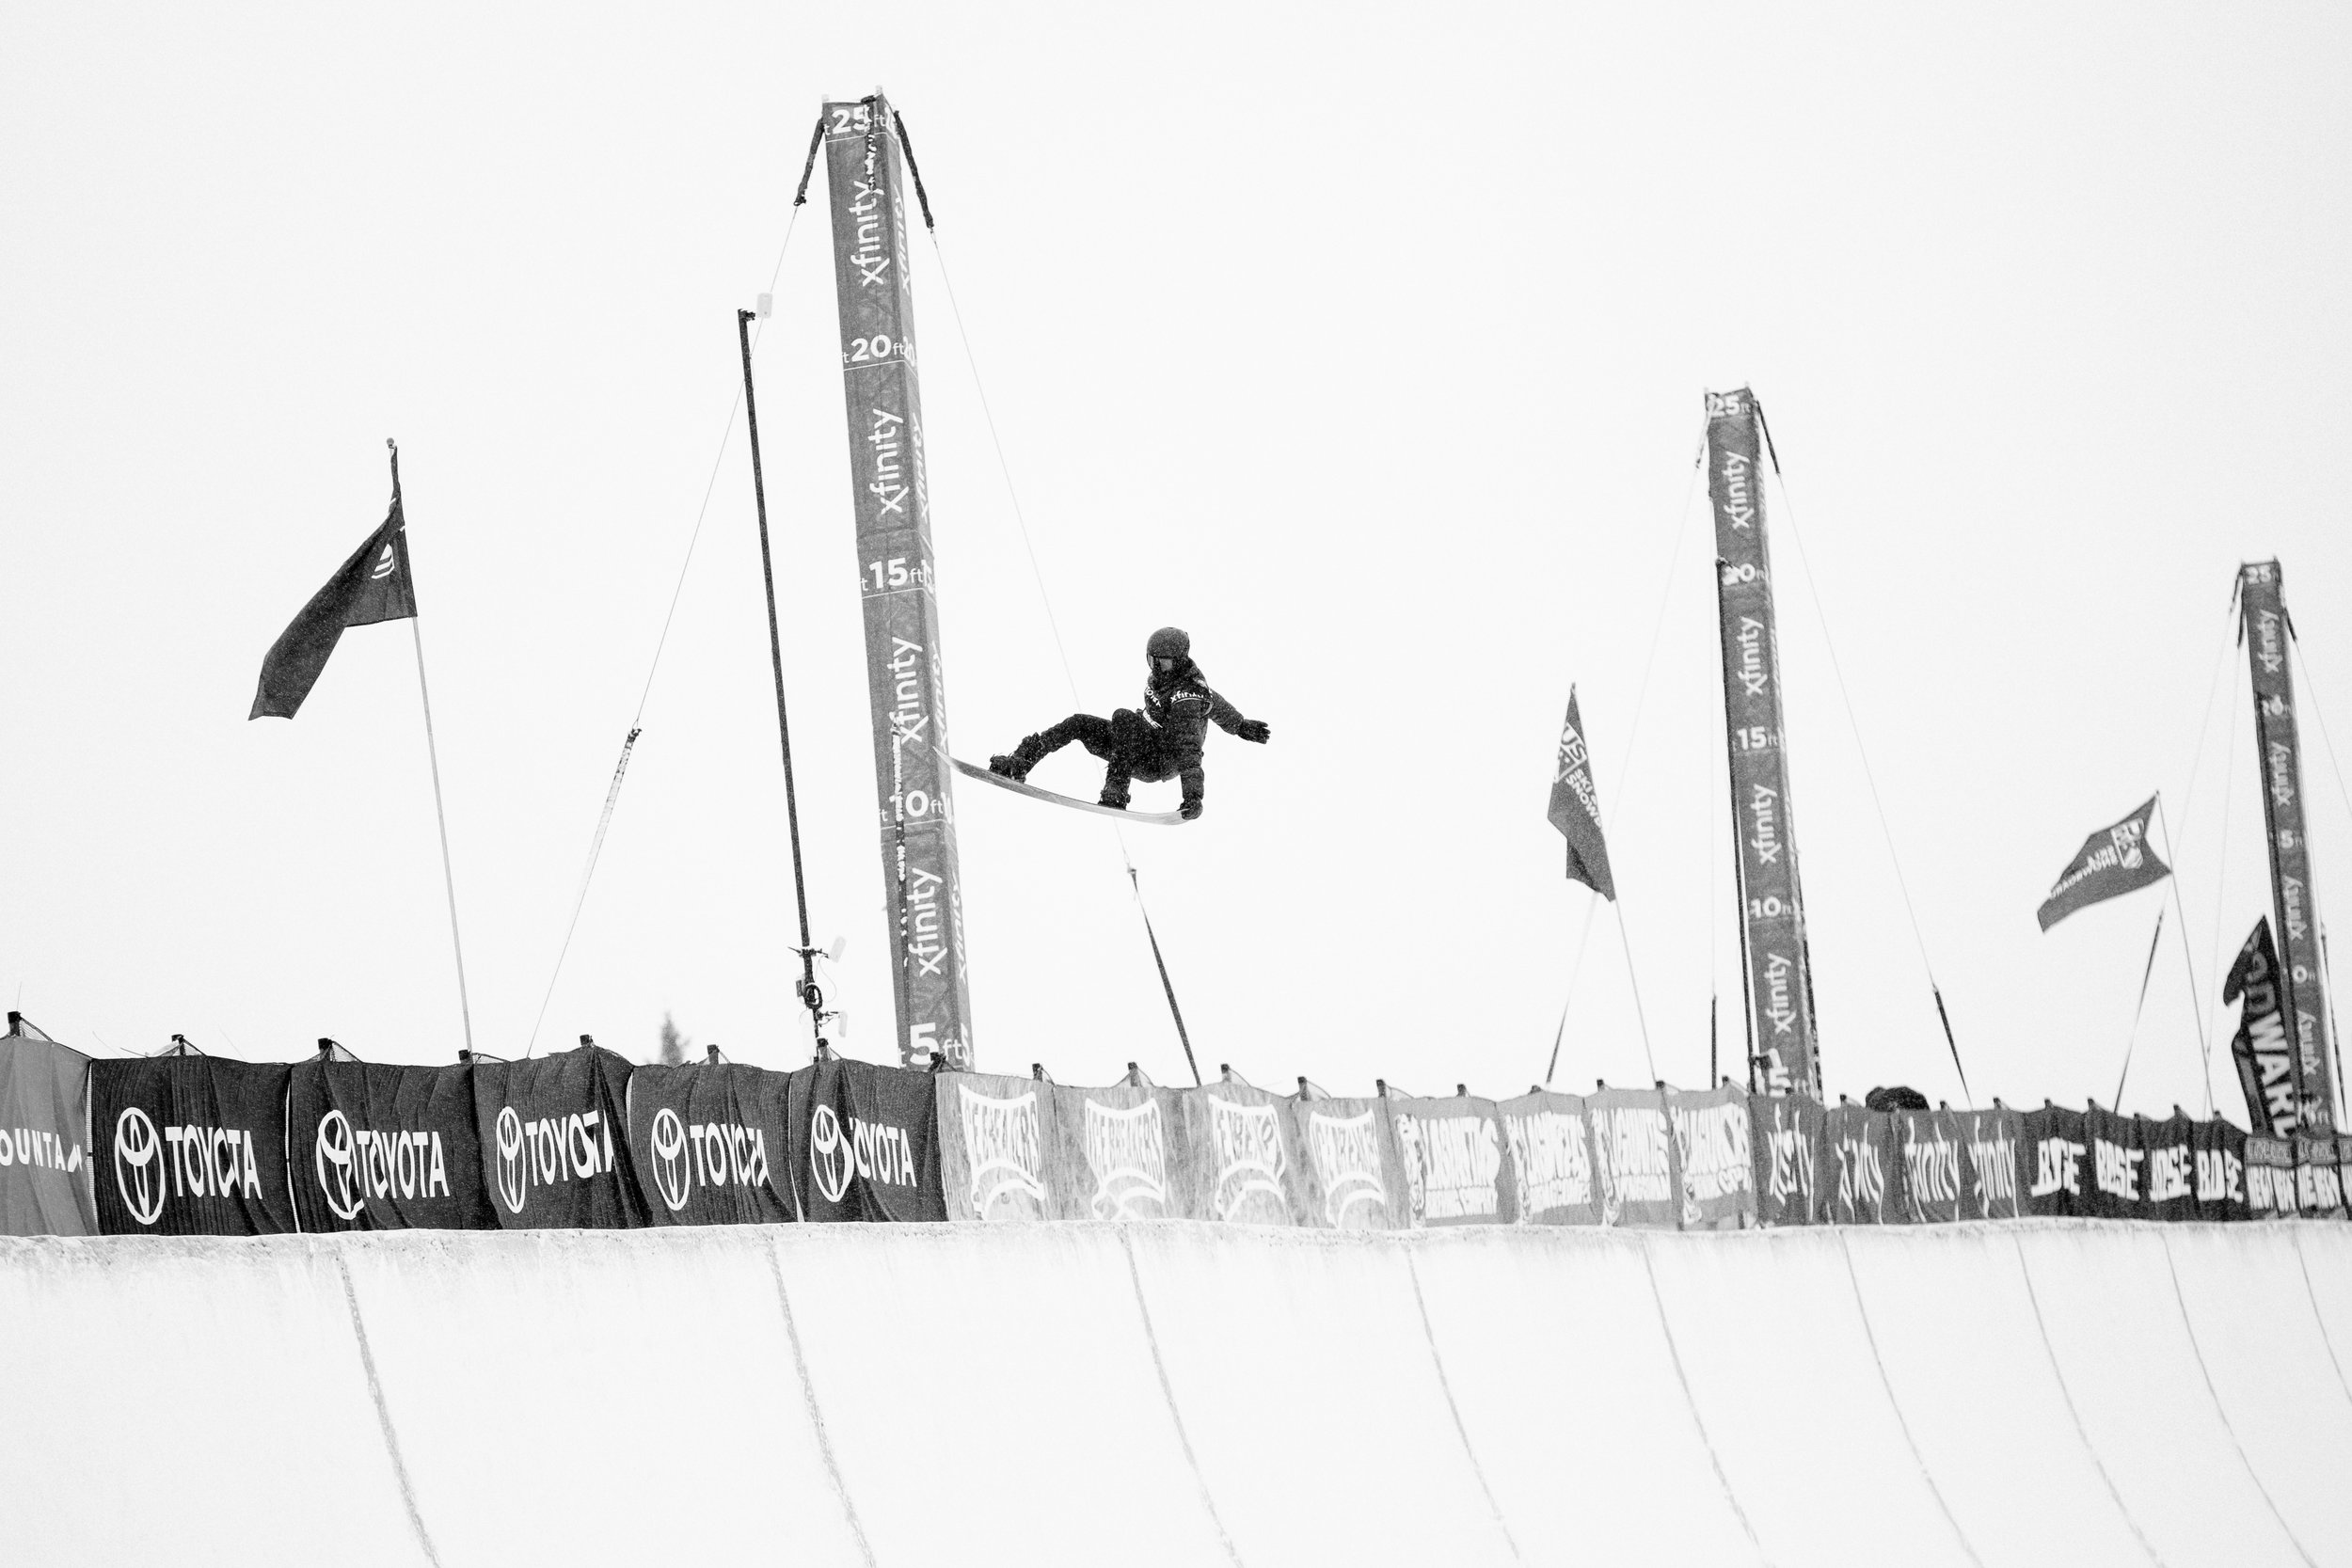 Snowboard halfpipe qualifiers